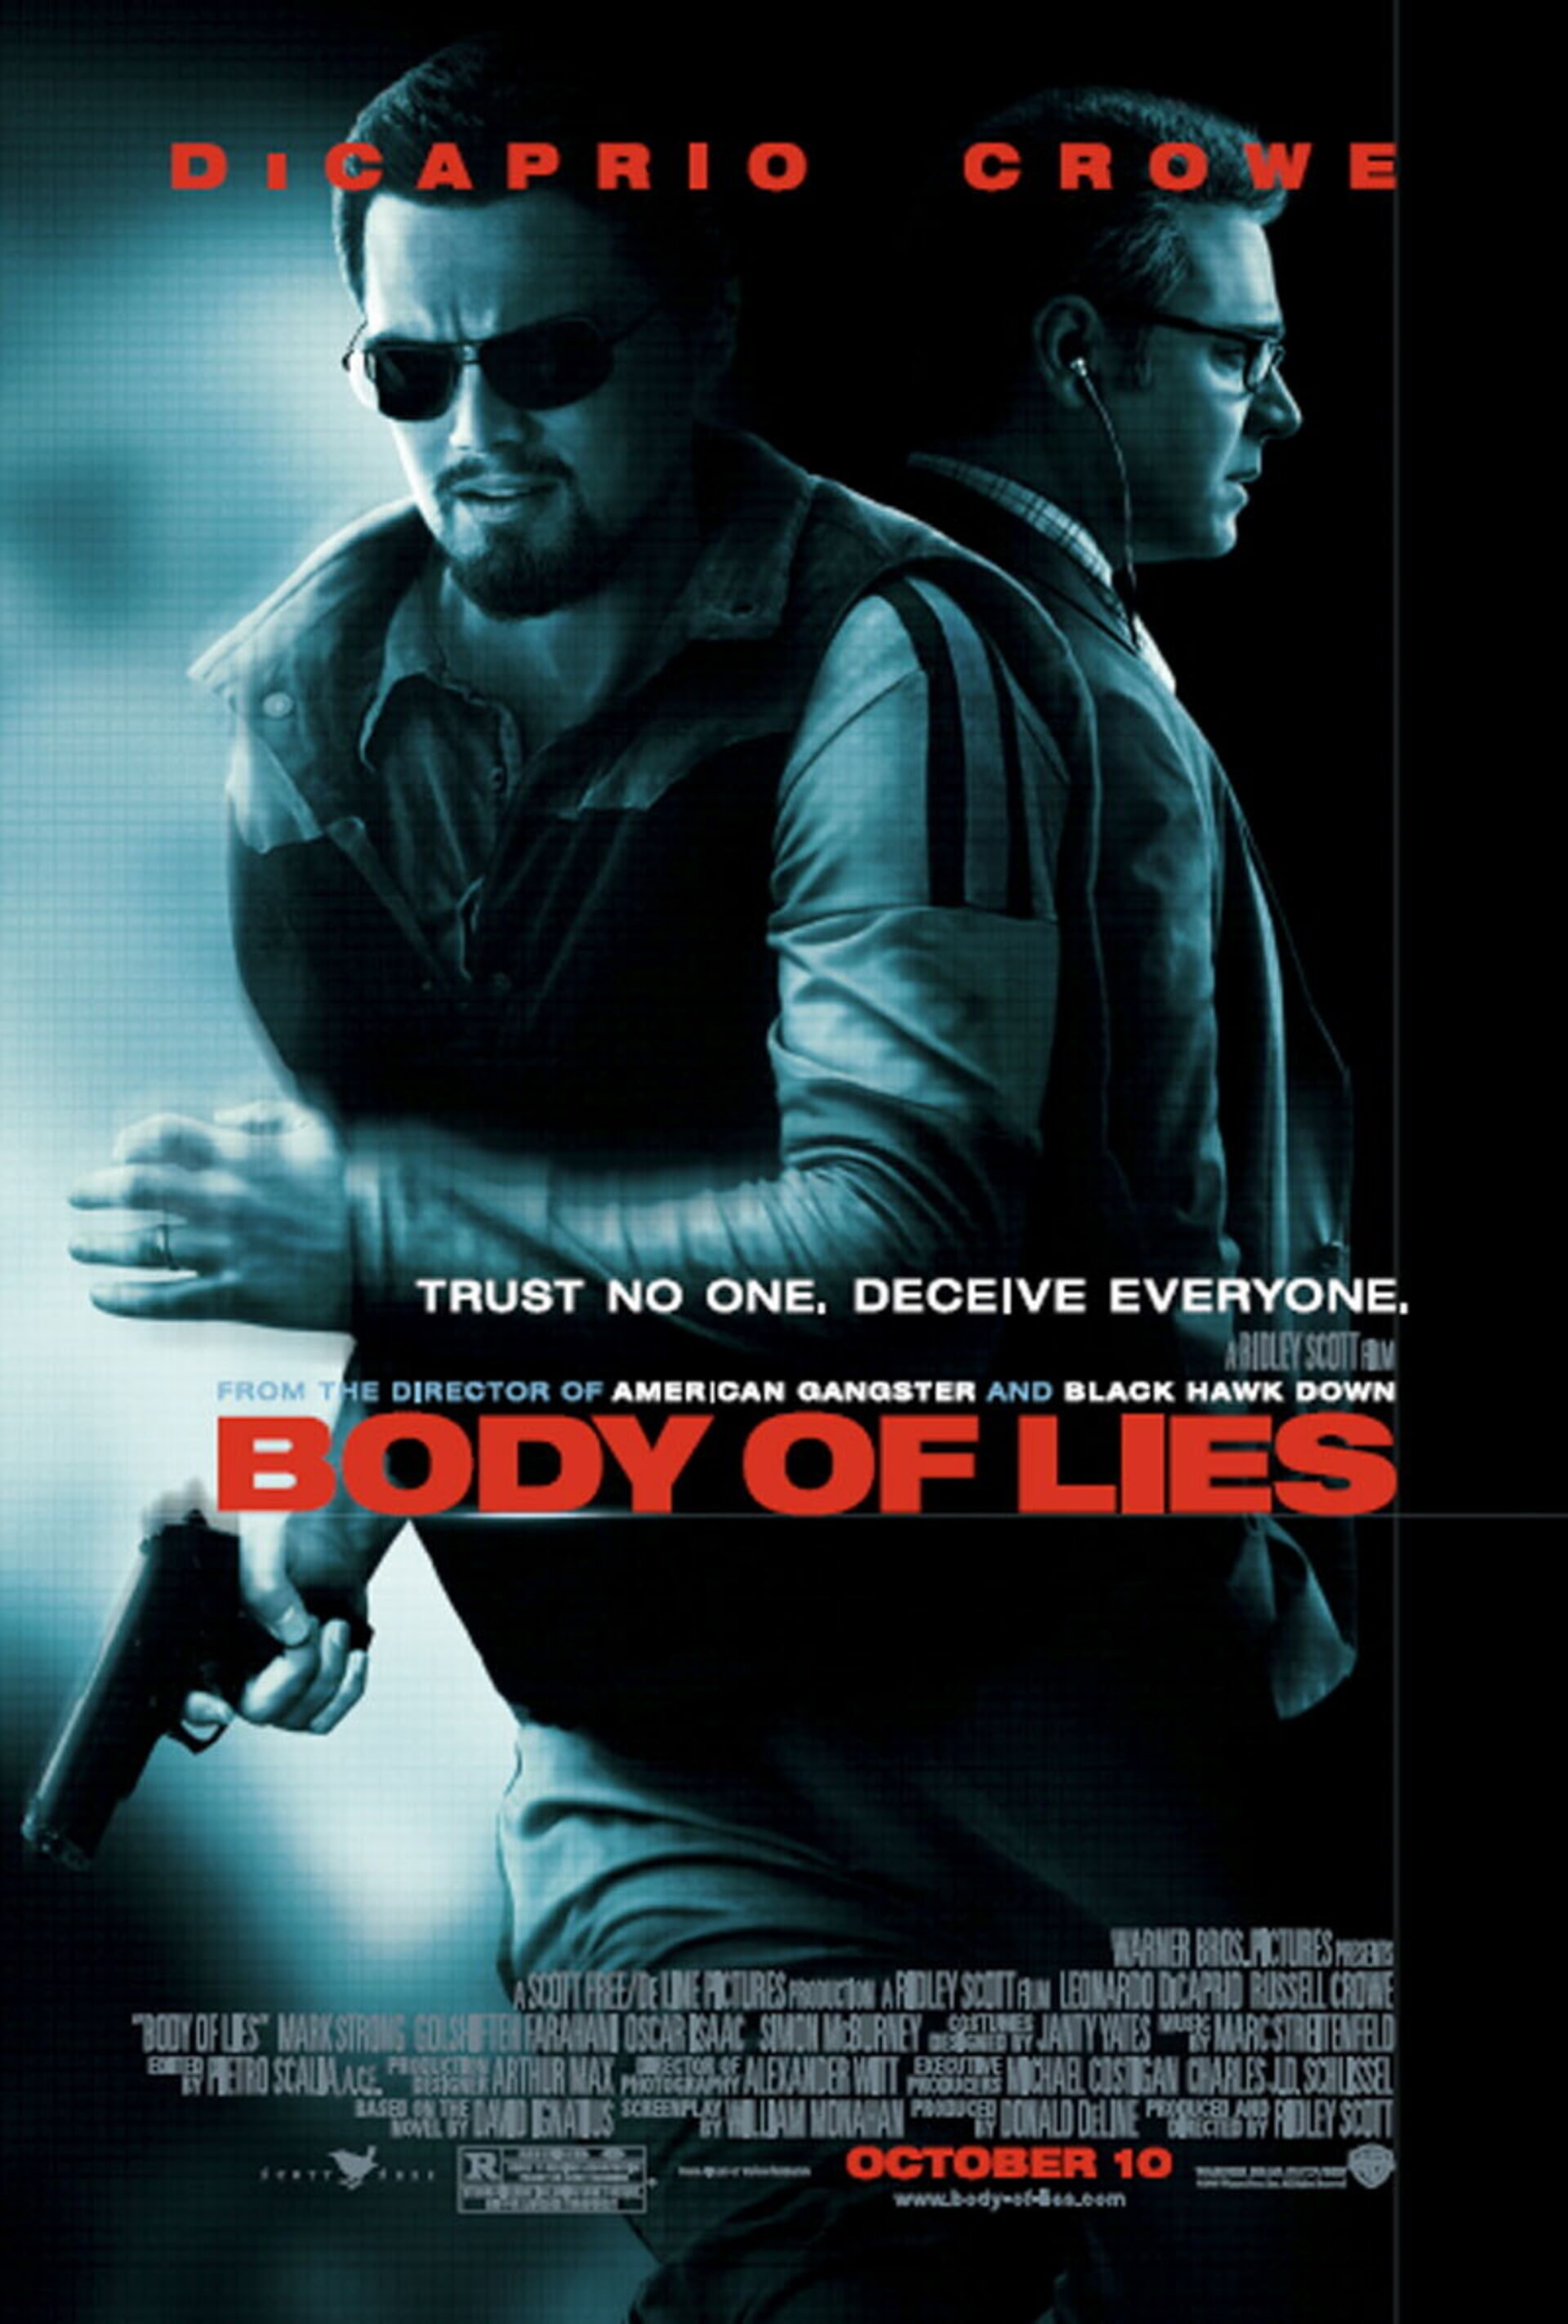 Body of Lies - Poster 1